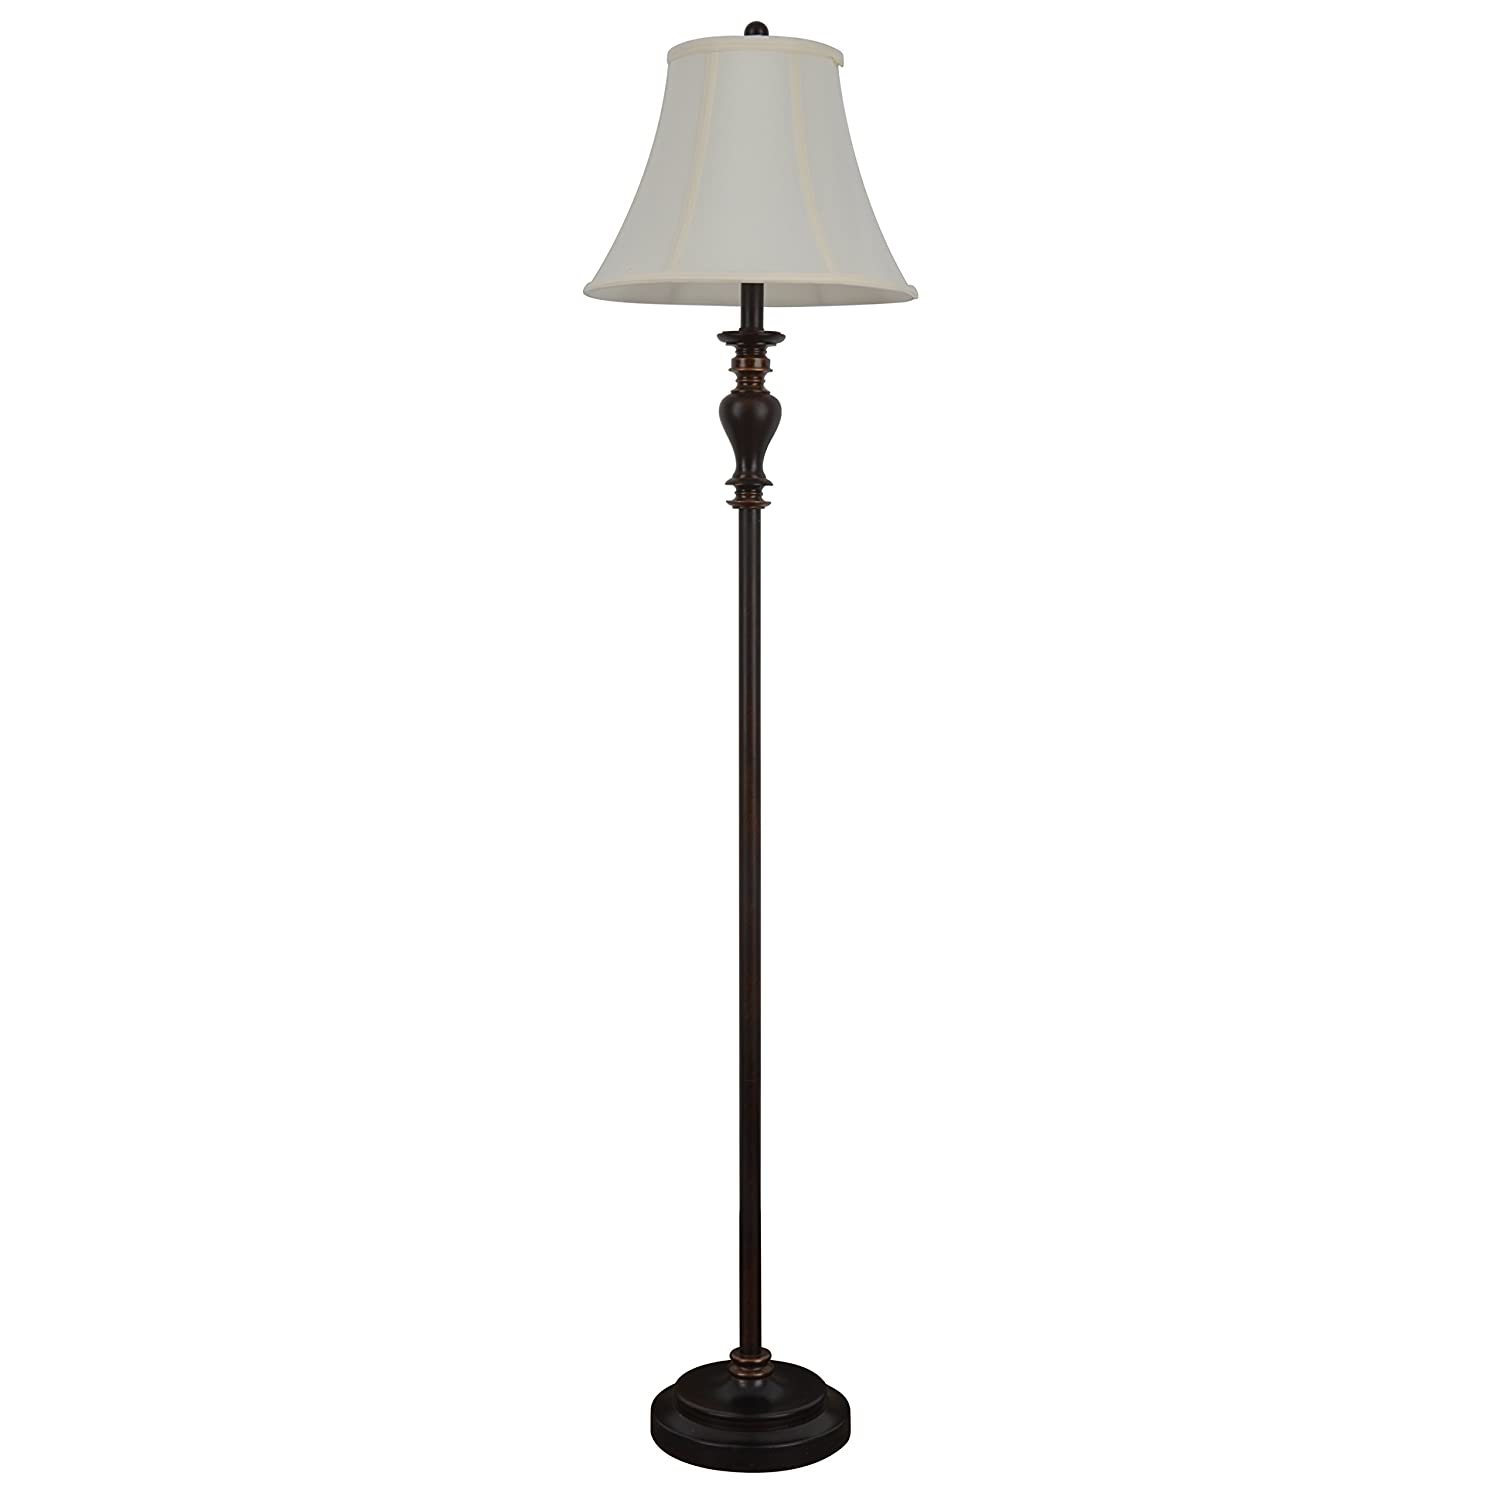 "Décor Therapy PL1644 61.5"" Walnut Ridge Brass Floor Lamp"